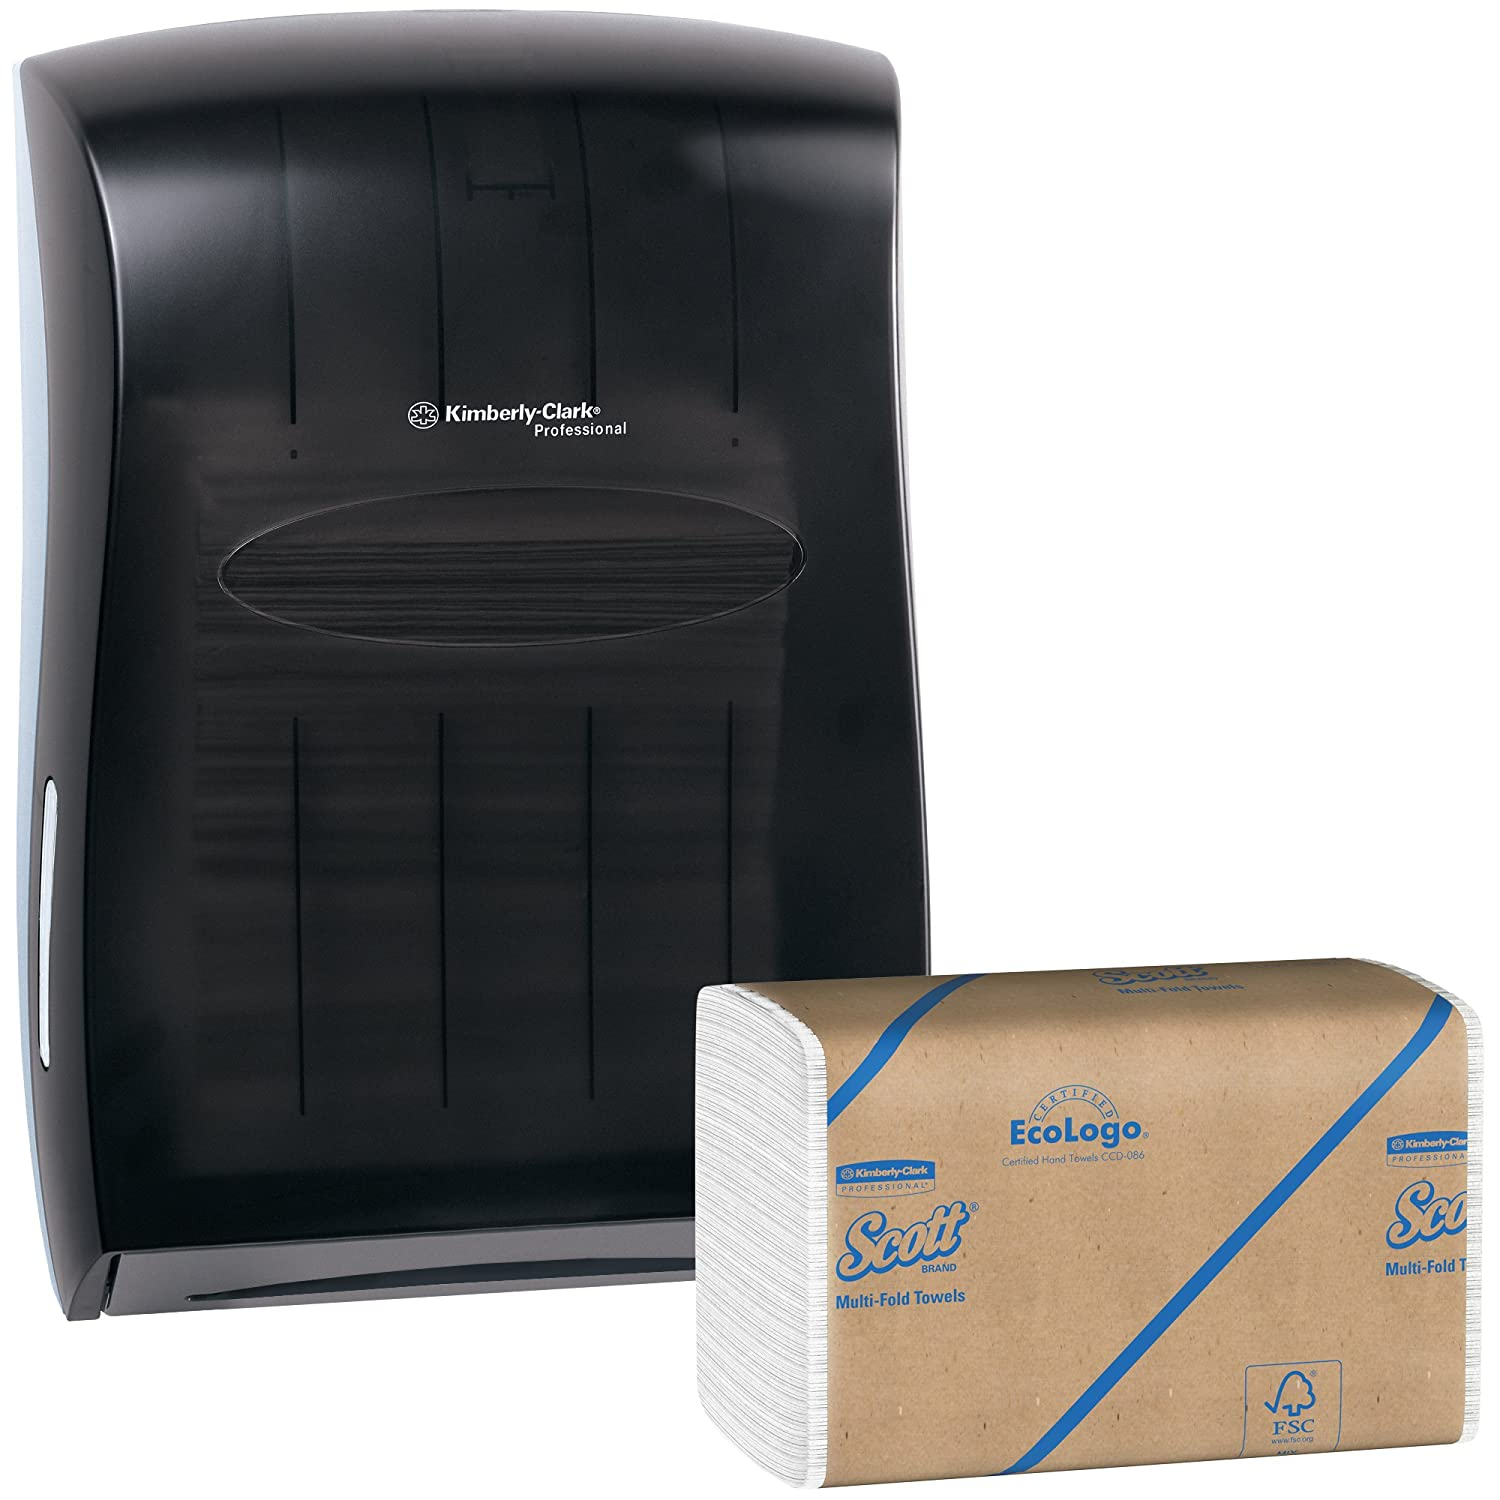 Kimberly Clark Paper Towel Dispenser (Black) with 15 Packs of 250 Scott Multifold Paper Towels (4,000 Towels)